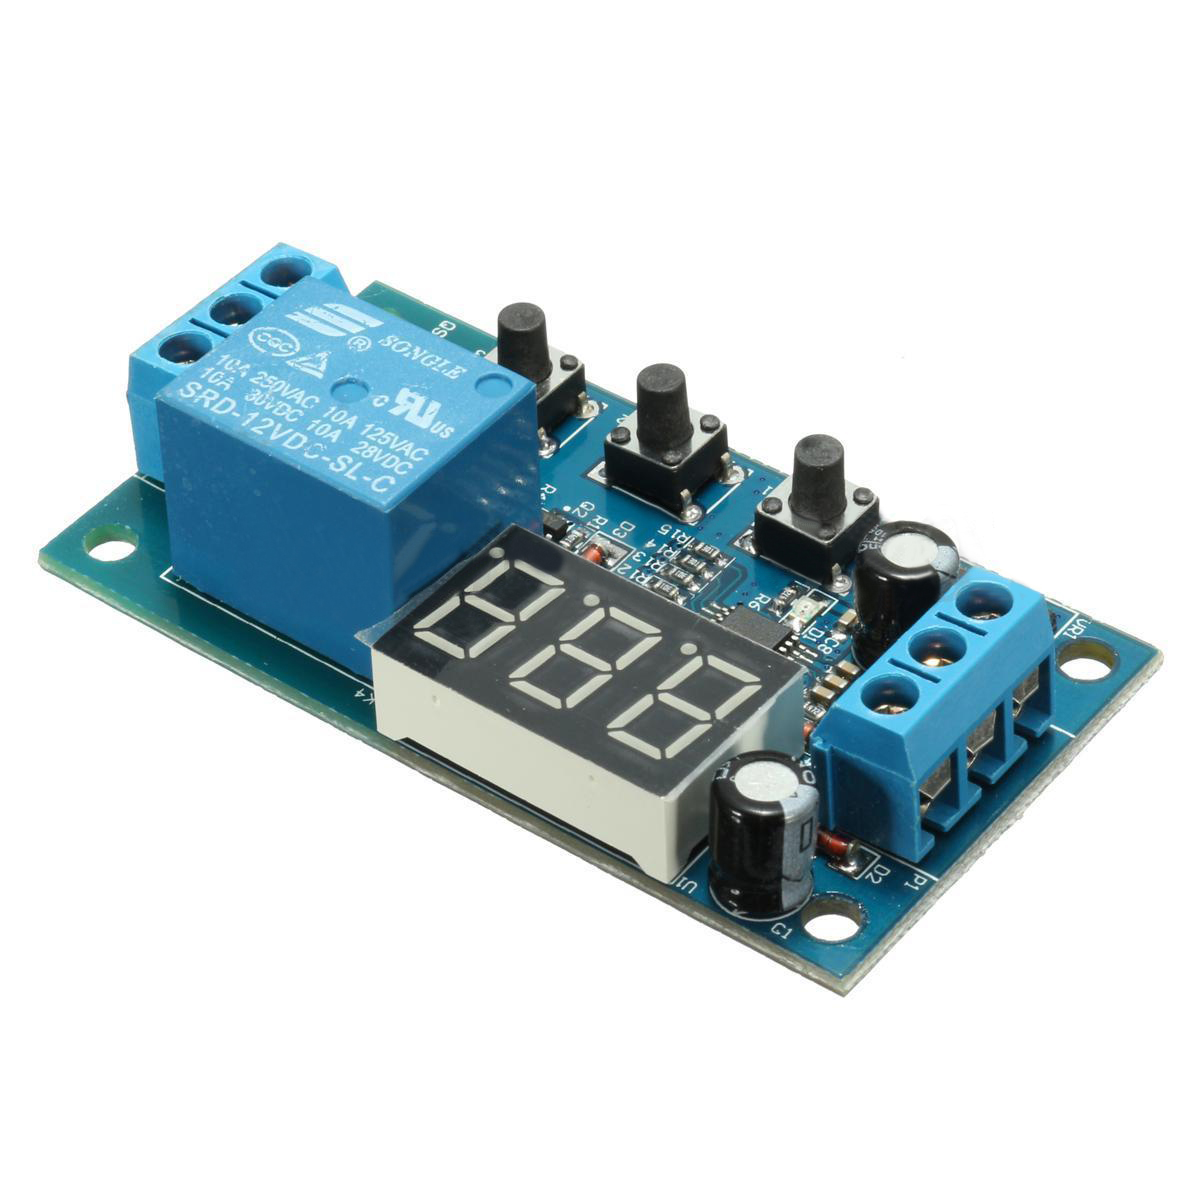 1pc Time Delay Relay Module High Quality 12V Cycle Timer Control Switch Circuit Board 12v timing delay relay module cycle timer digital led dual display 0 999 hours